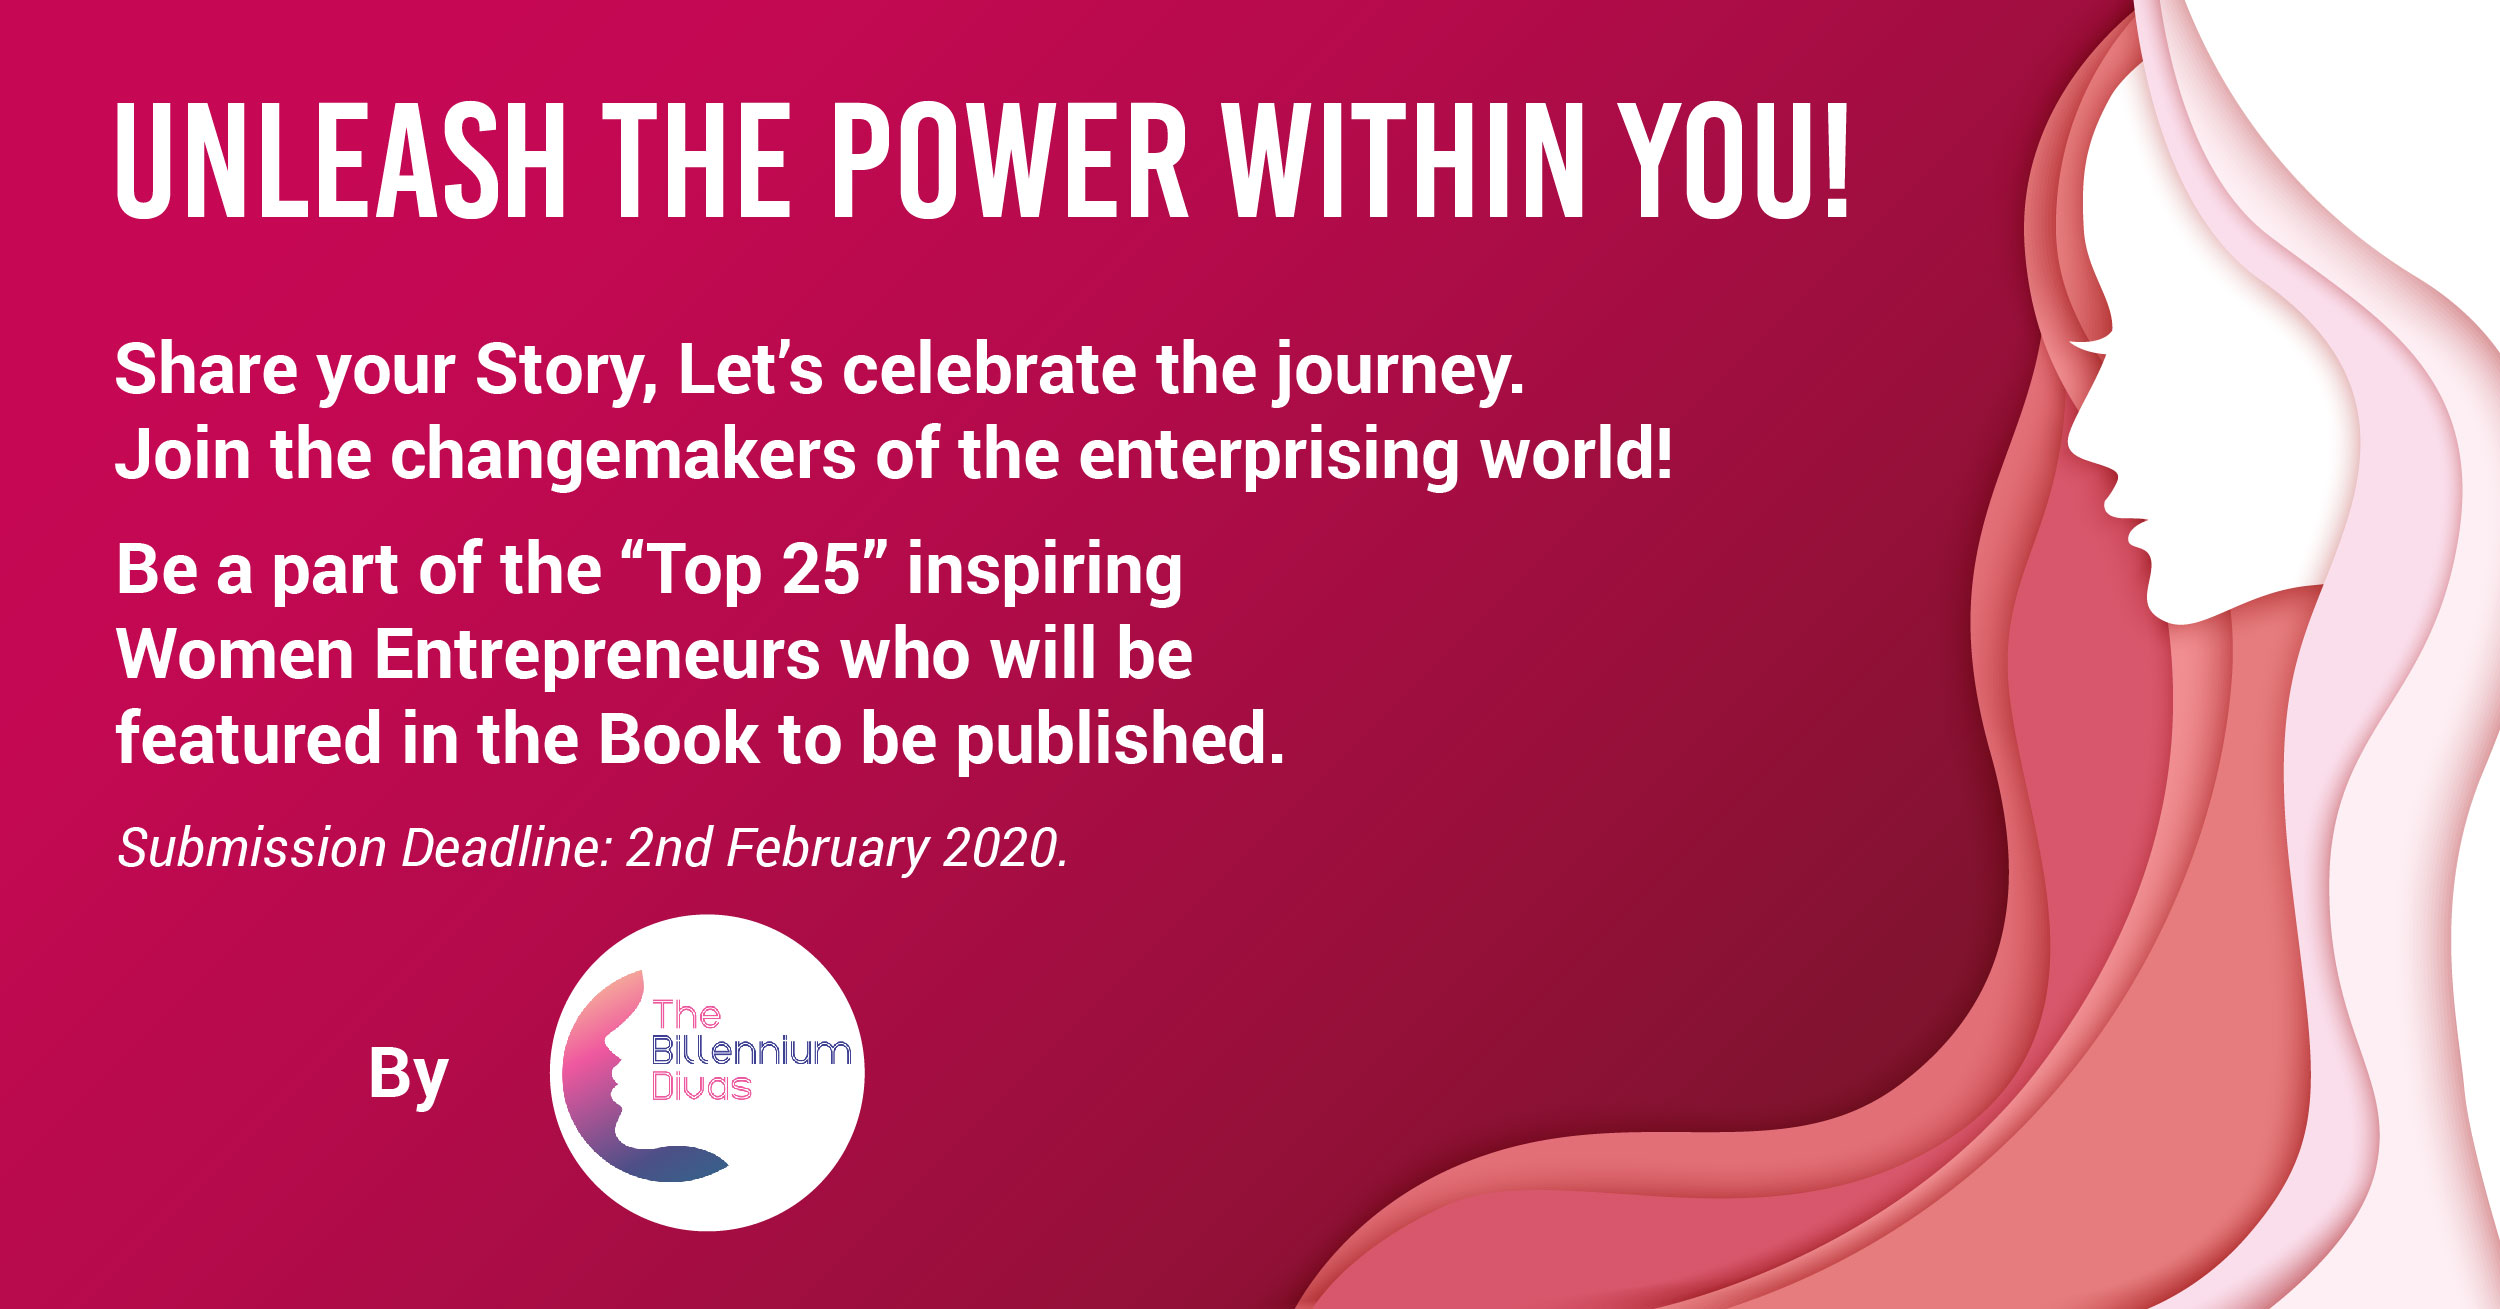 Inspiring Stories of Top 25 Women Entrepreneurs in Upcoming Billennium Divas Book